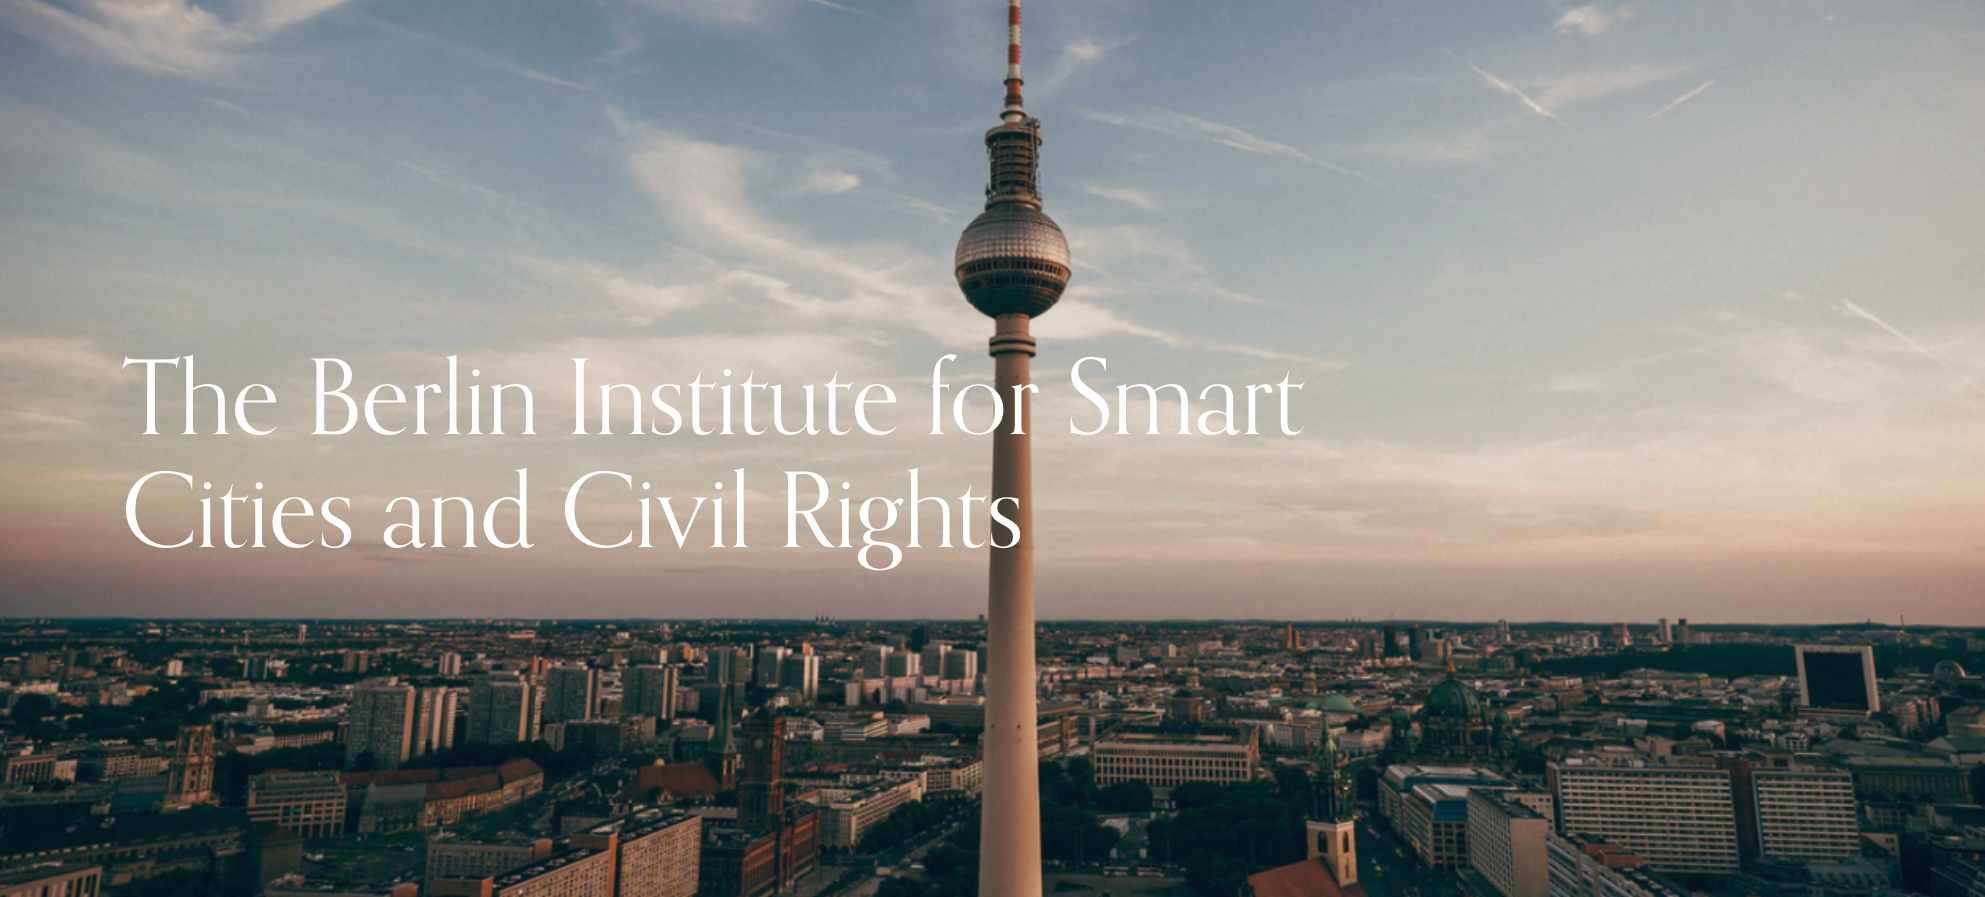 Berlin Institute header over a backdrop of the Berlin skyline with the TV tower front and center